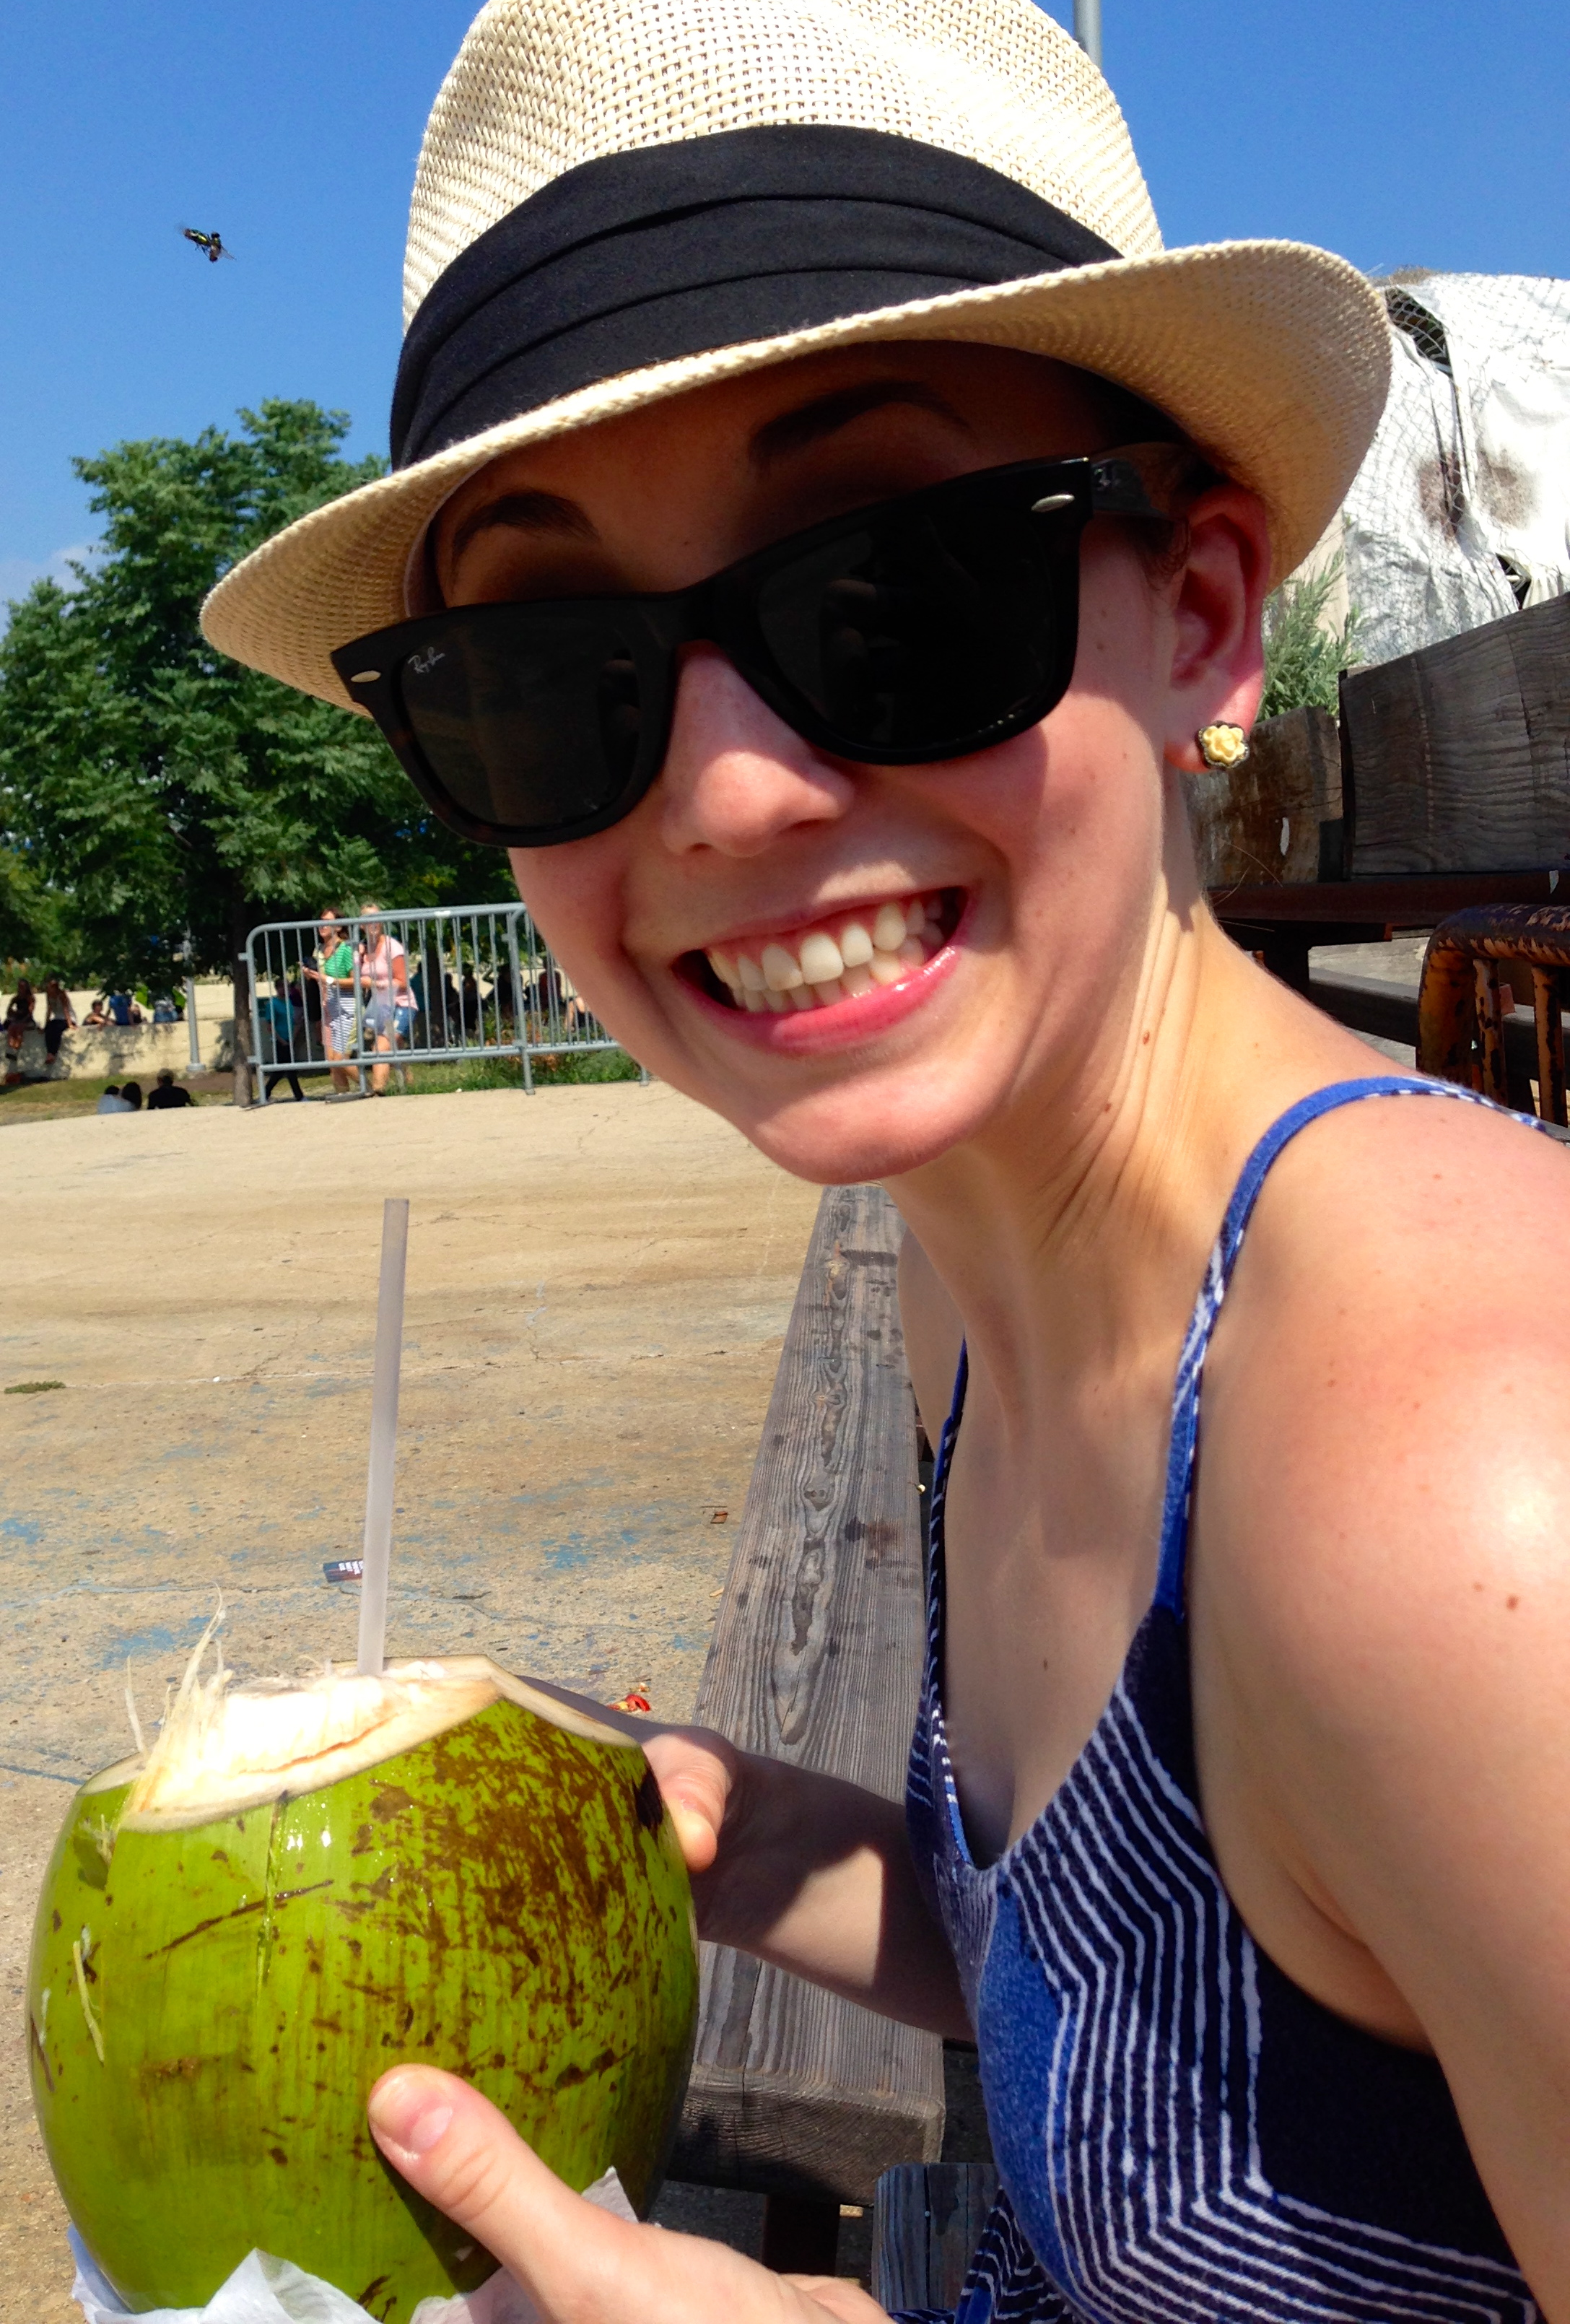 I was so excited to get my hands on a fresh coconut finally at Smorgasburg in Williamsburg, BK, NY!